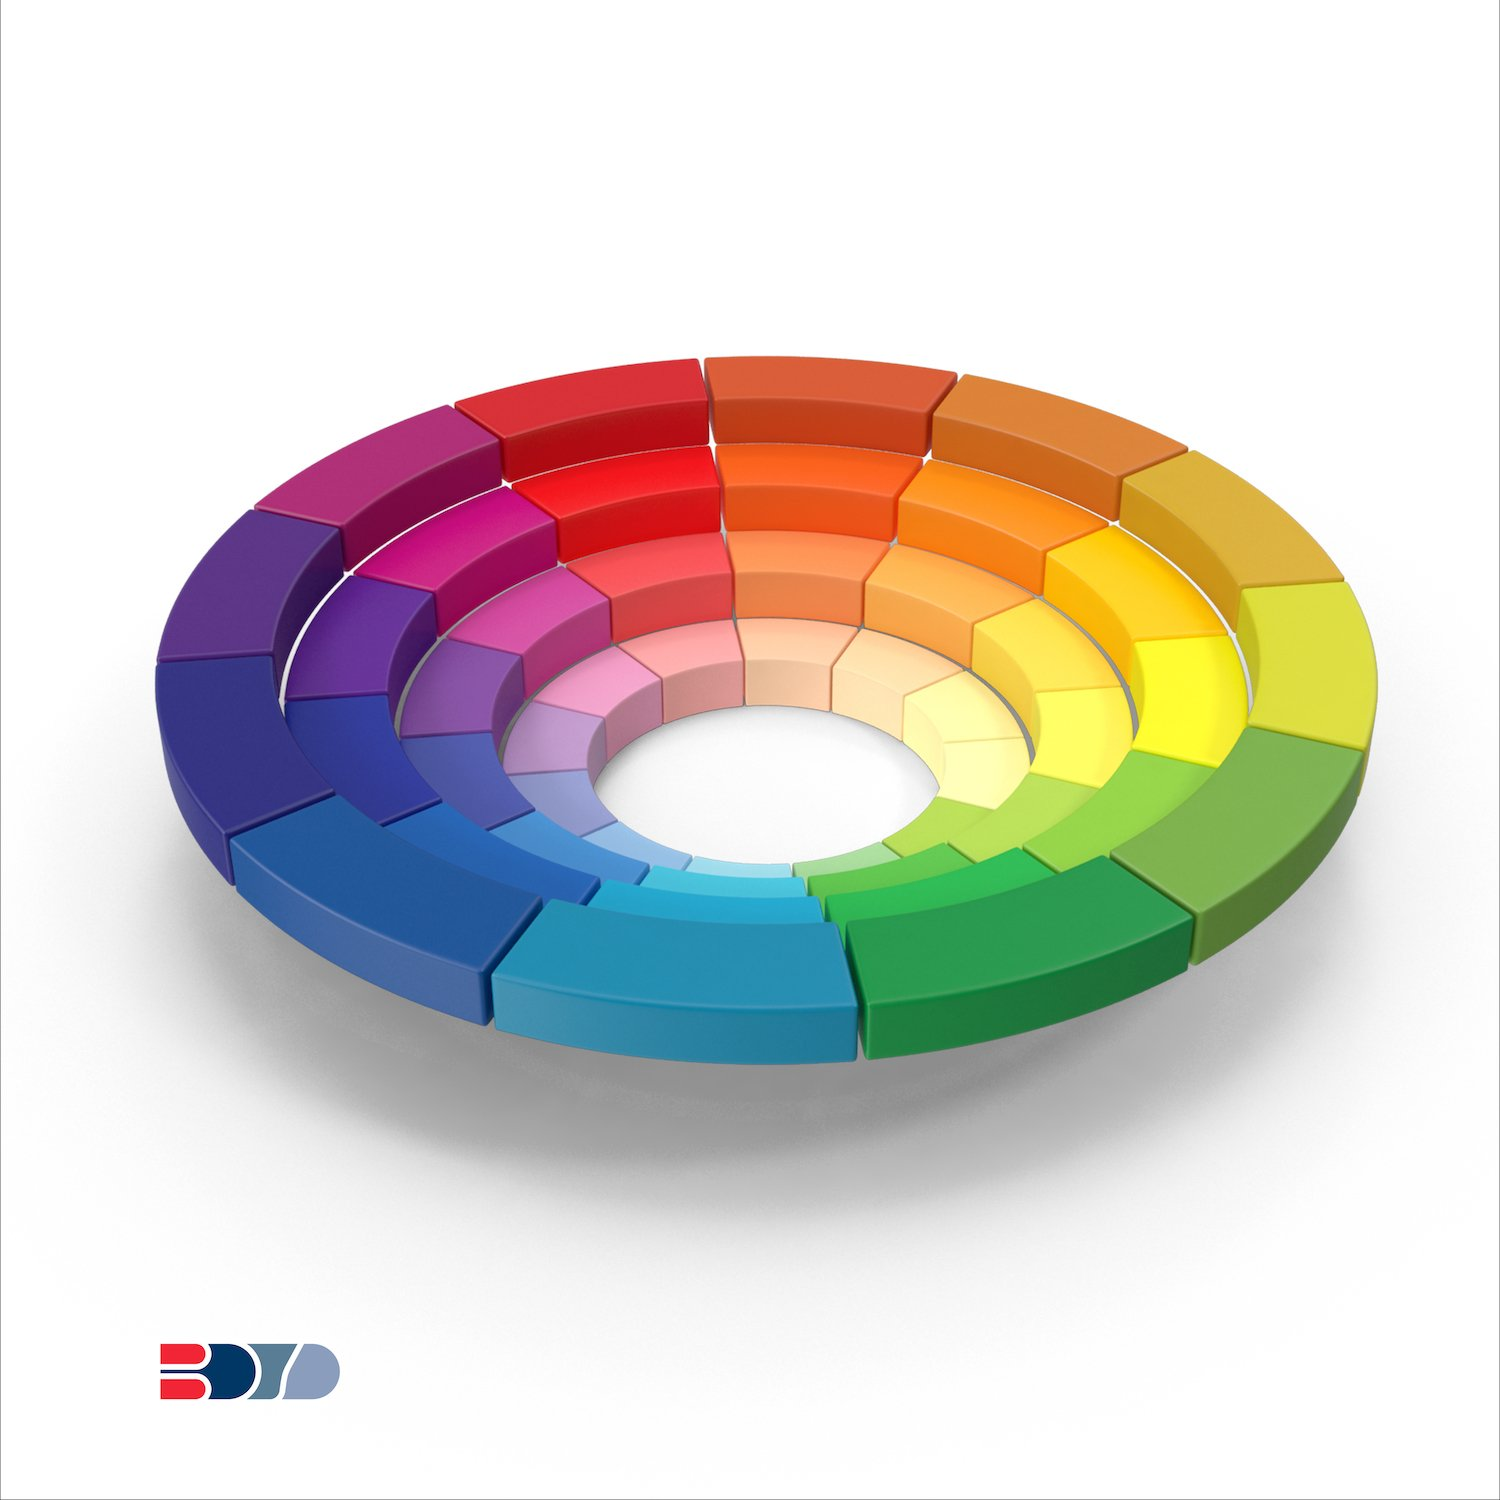 Brand Identity What do your colors say about your brand identity? BDYD and Co